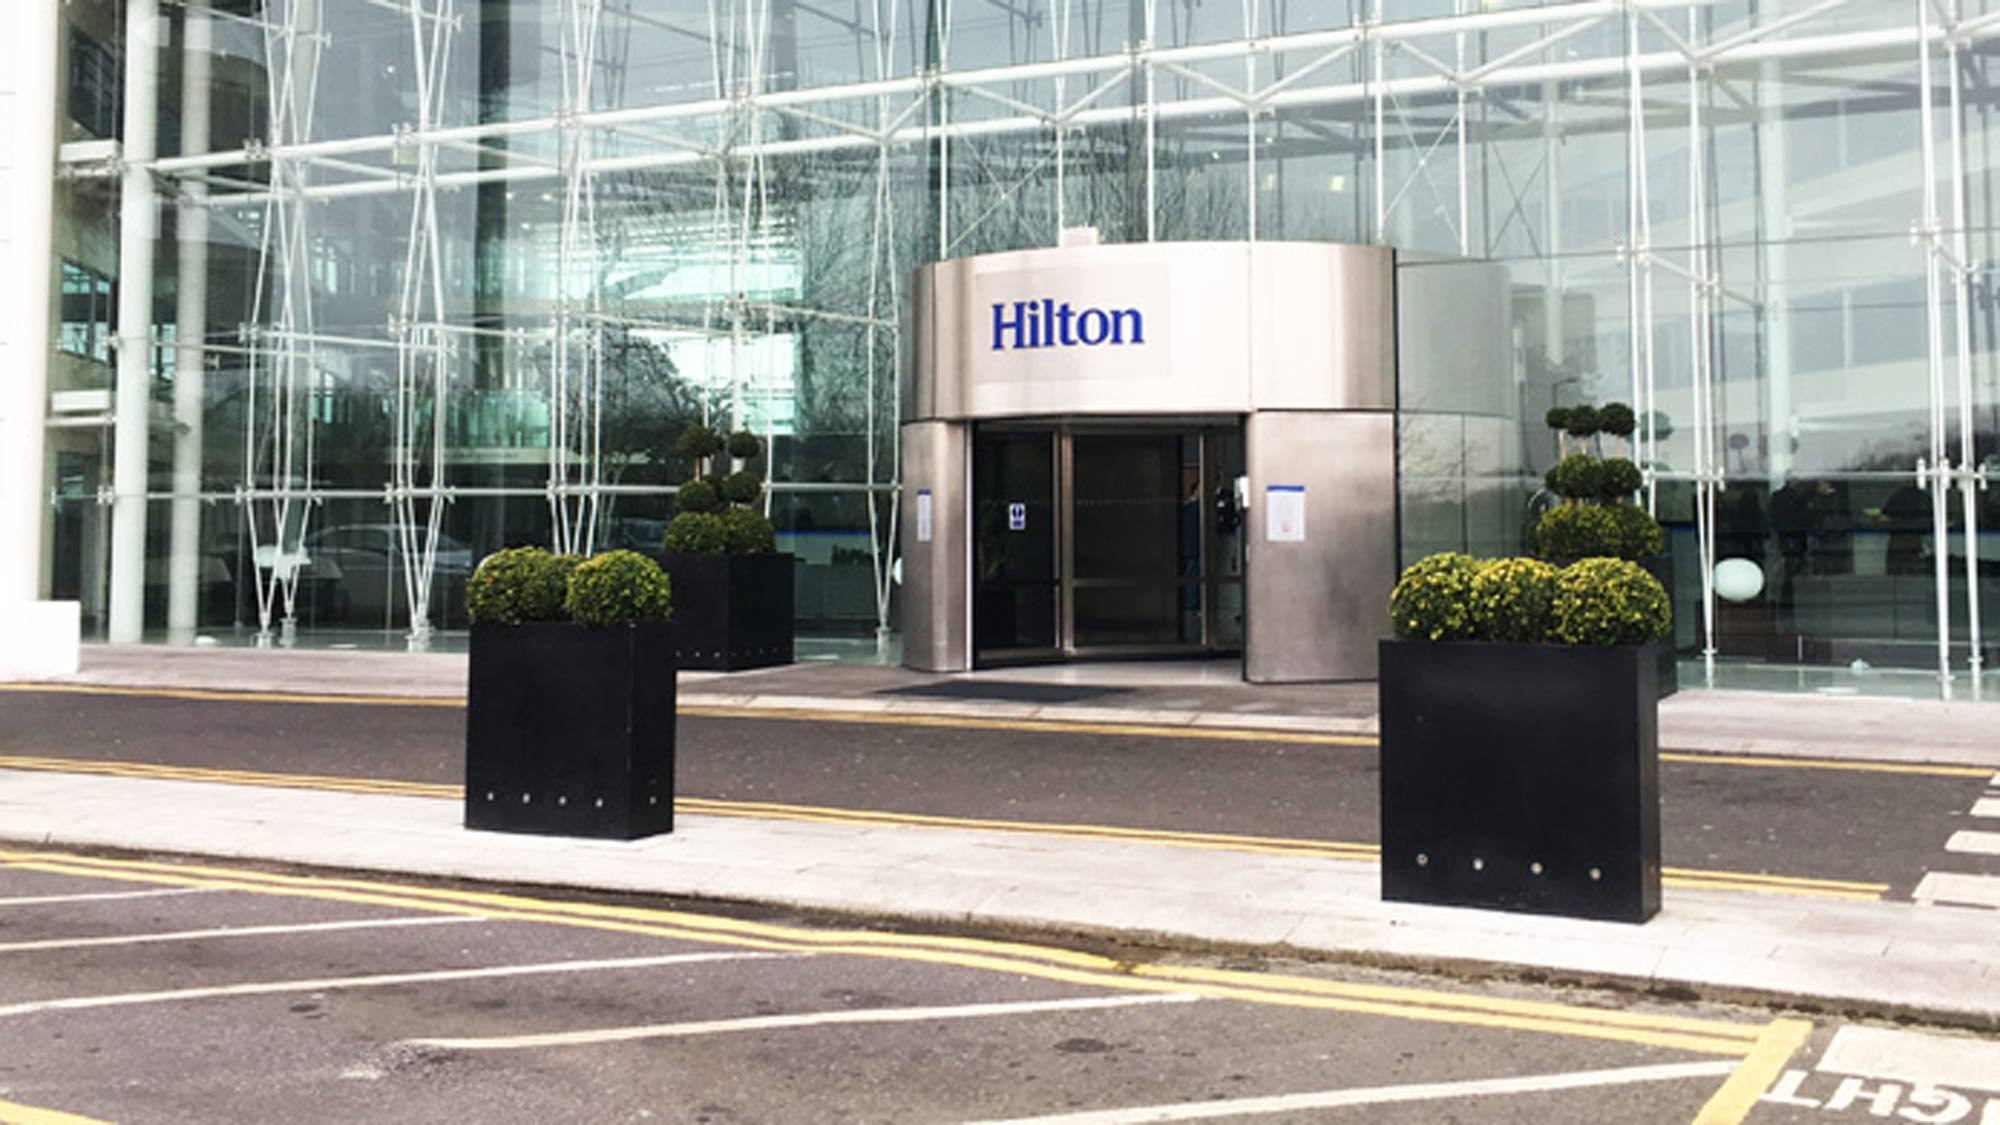 Airport Hotels Heathrow Hilton